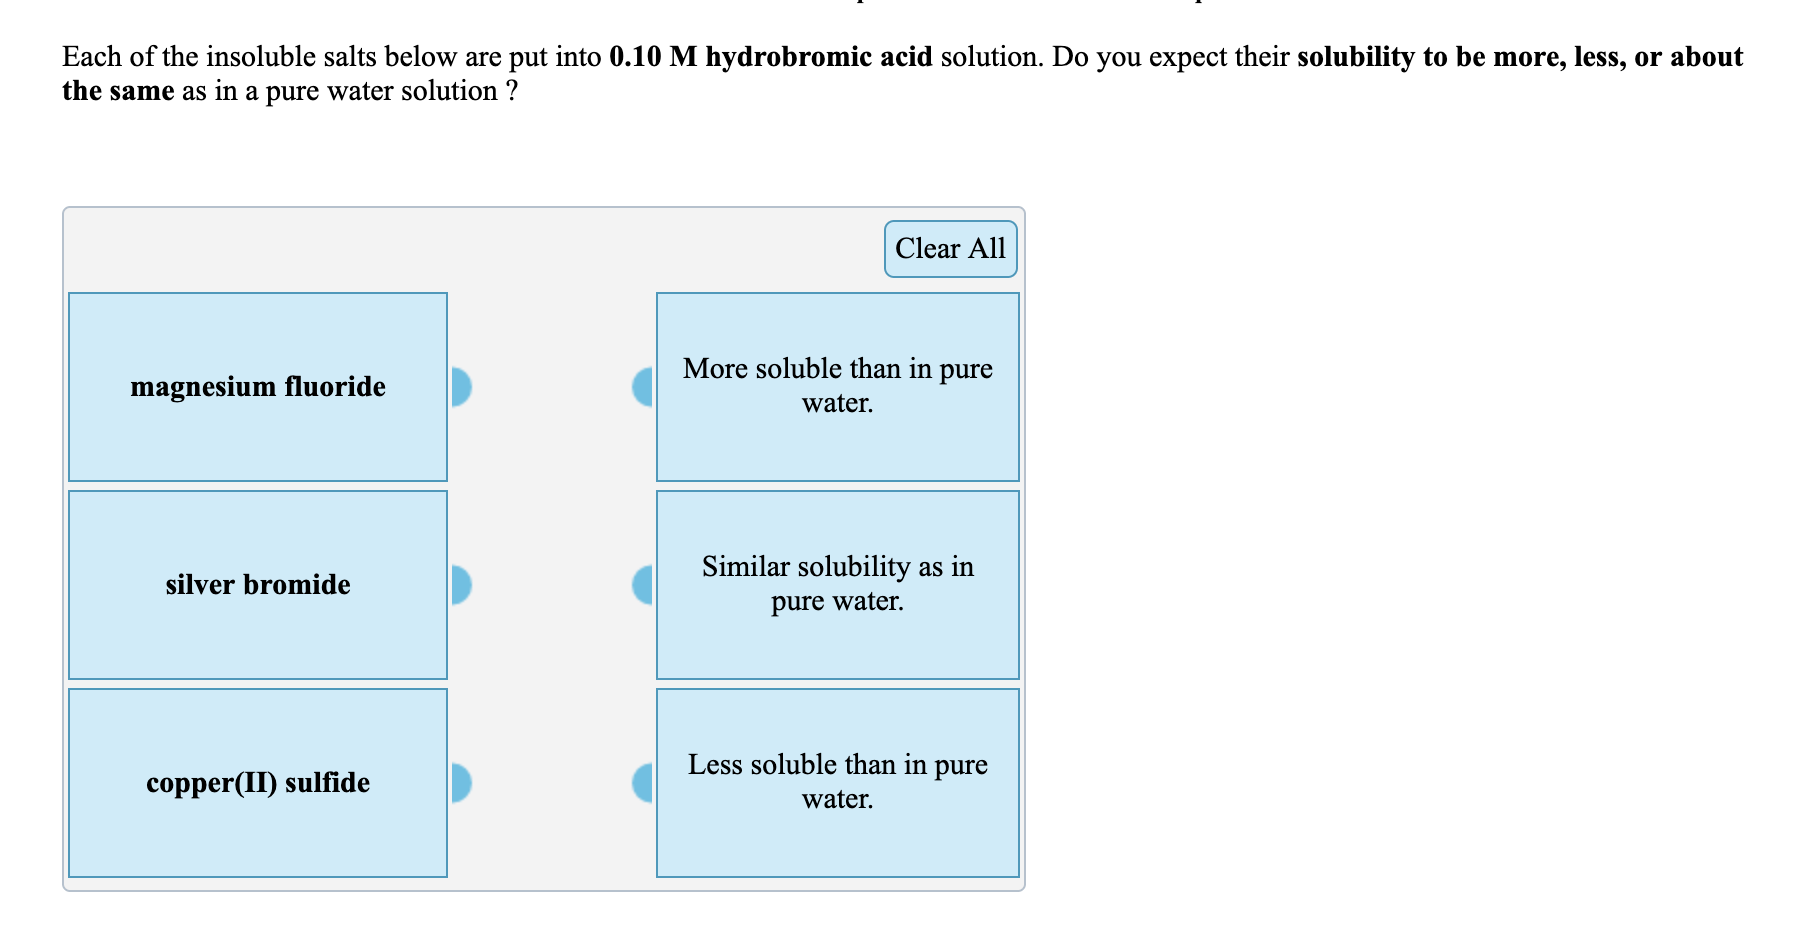 Each Of The Insoluble Salts Below Are Put Into 0 10 M